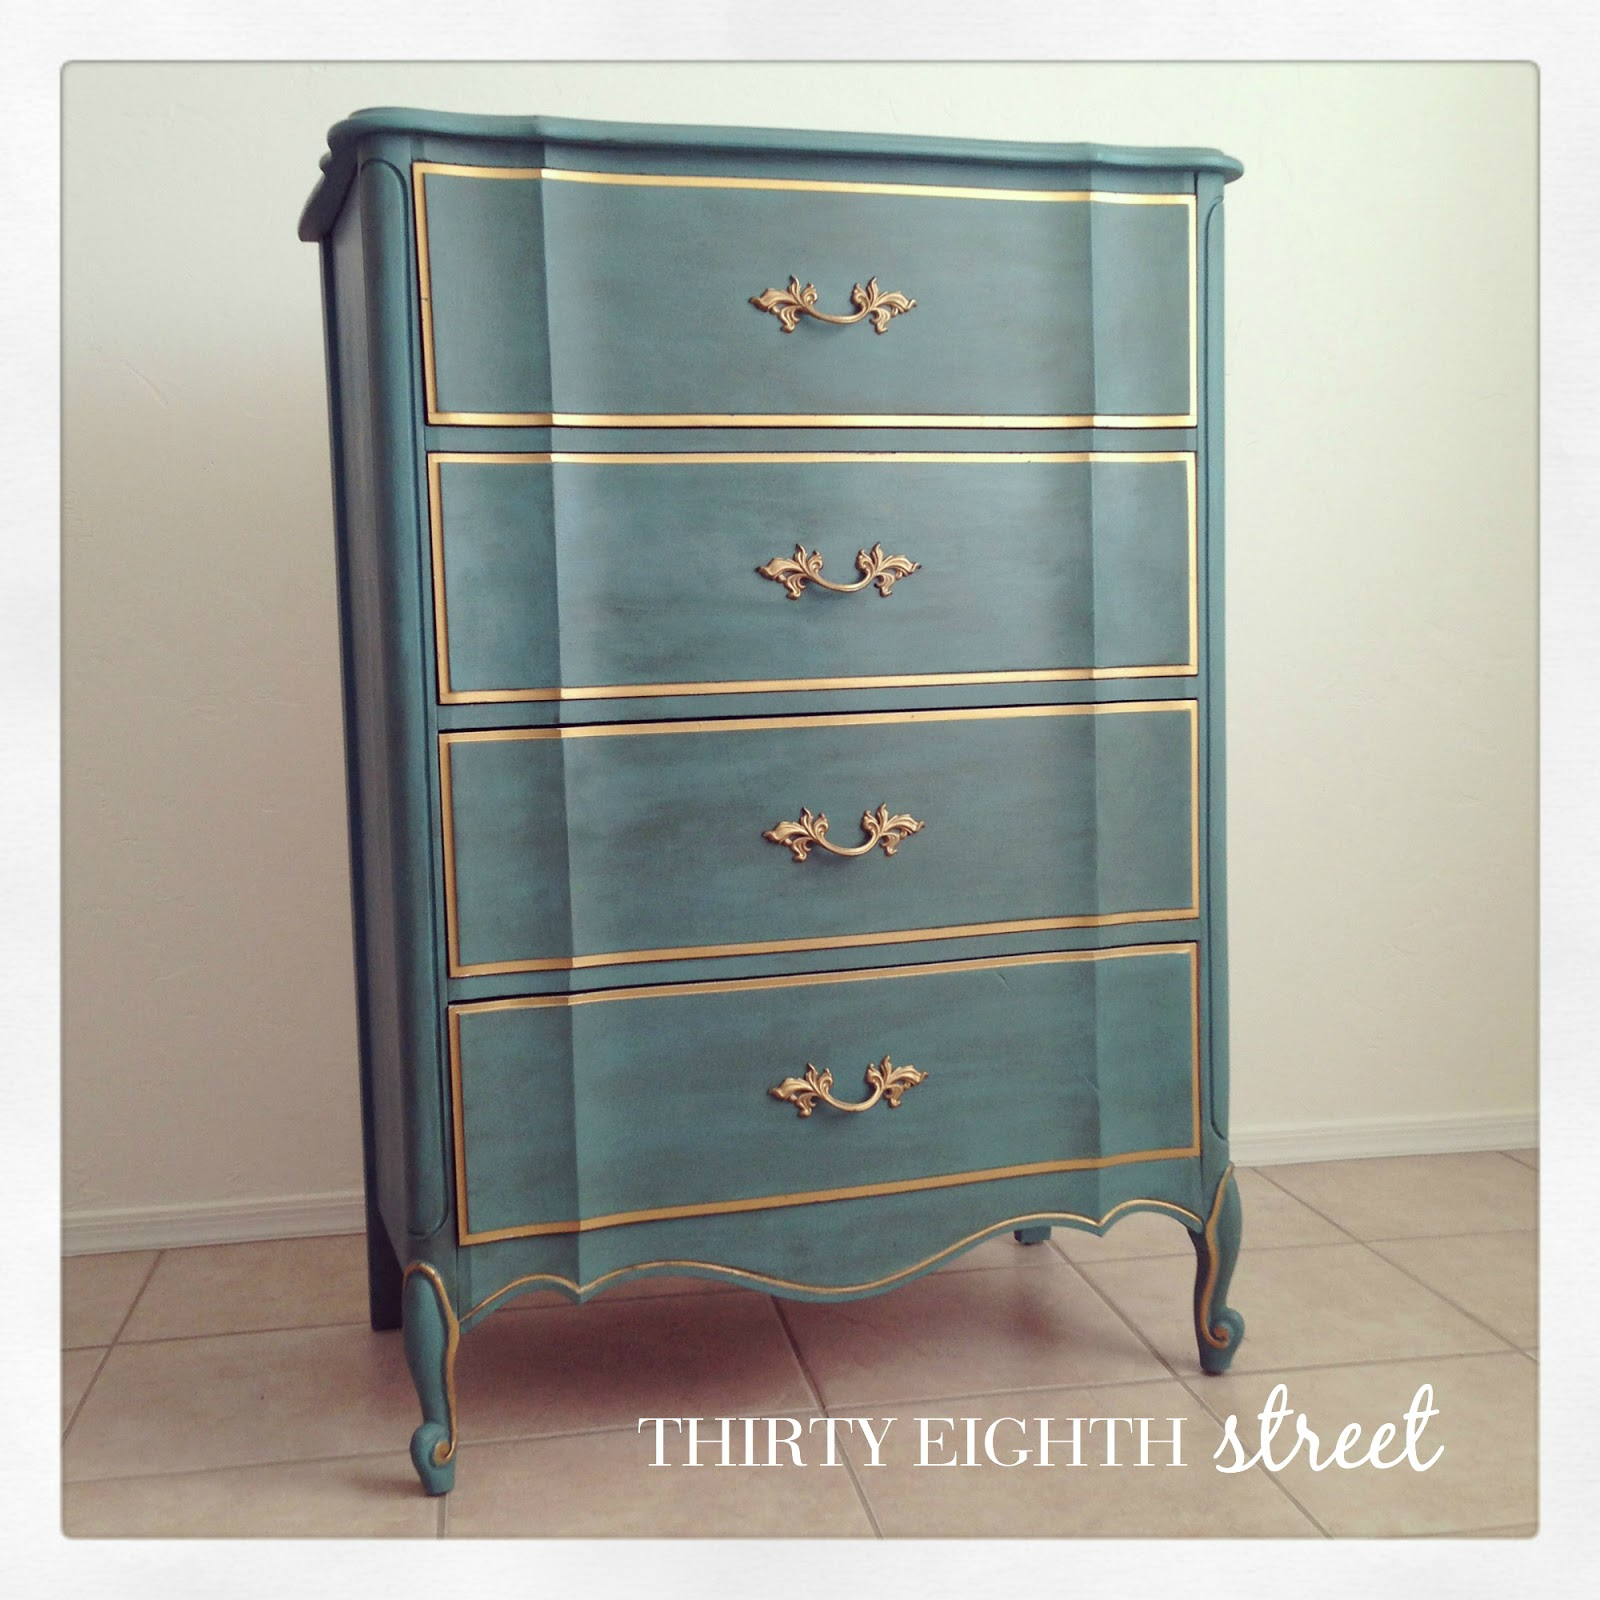 The melinda bedroom collection thirty eighth street for How to paint my bedroom furniture